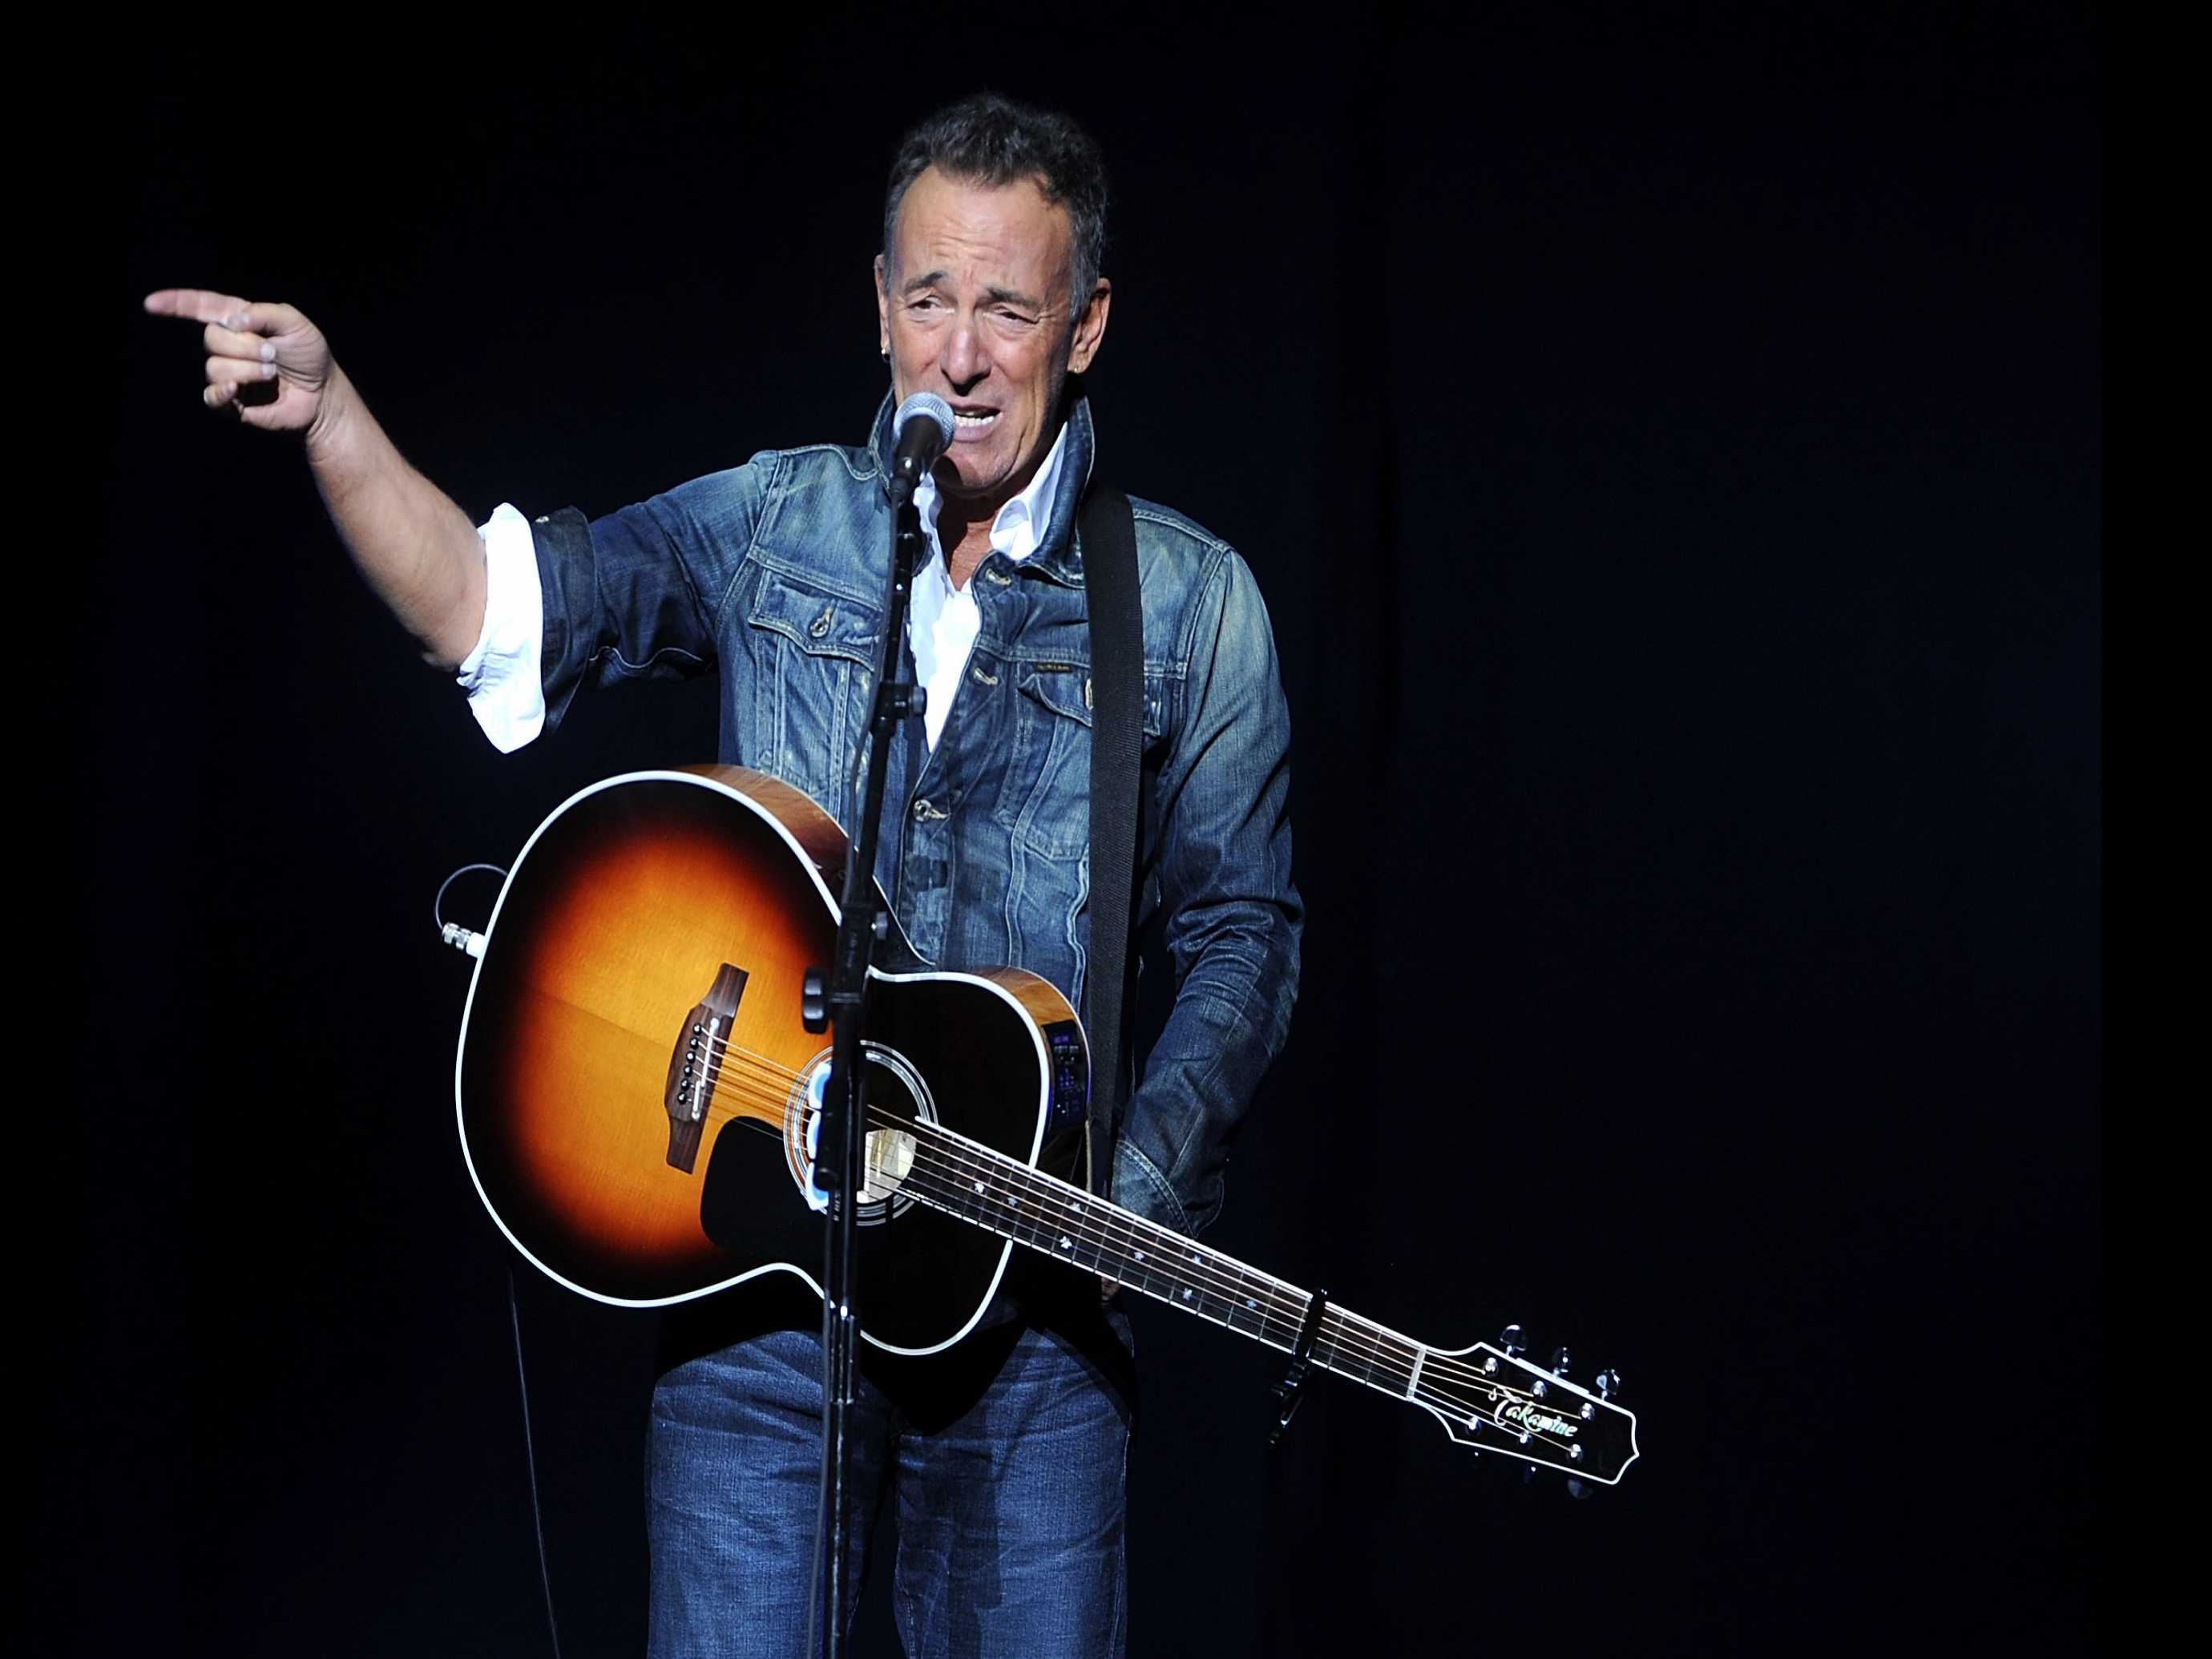 Bruce Springsteen: No Tour with E Street Band in 2019